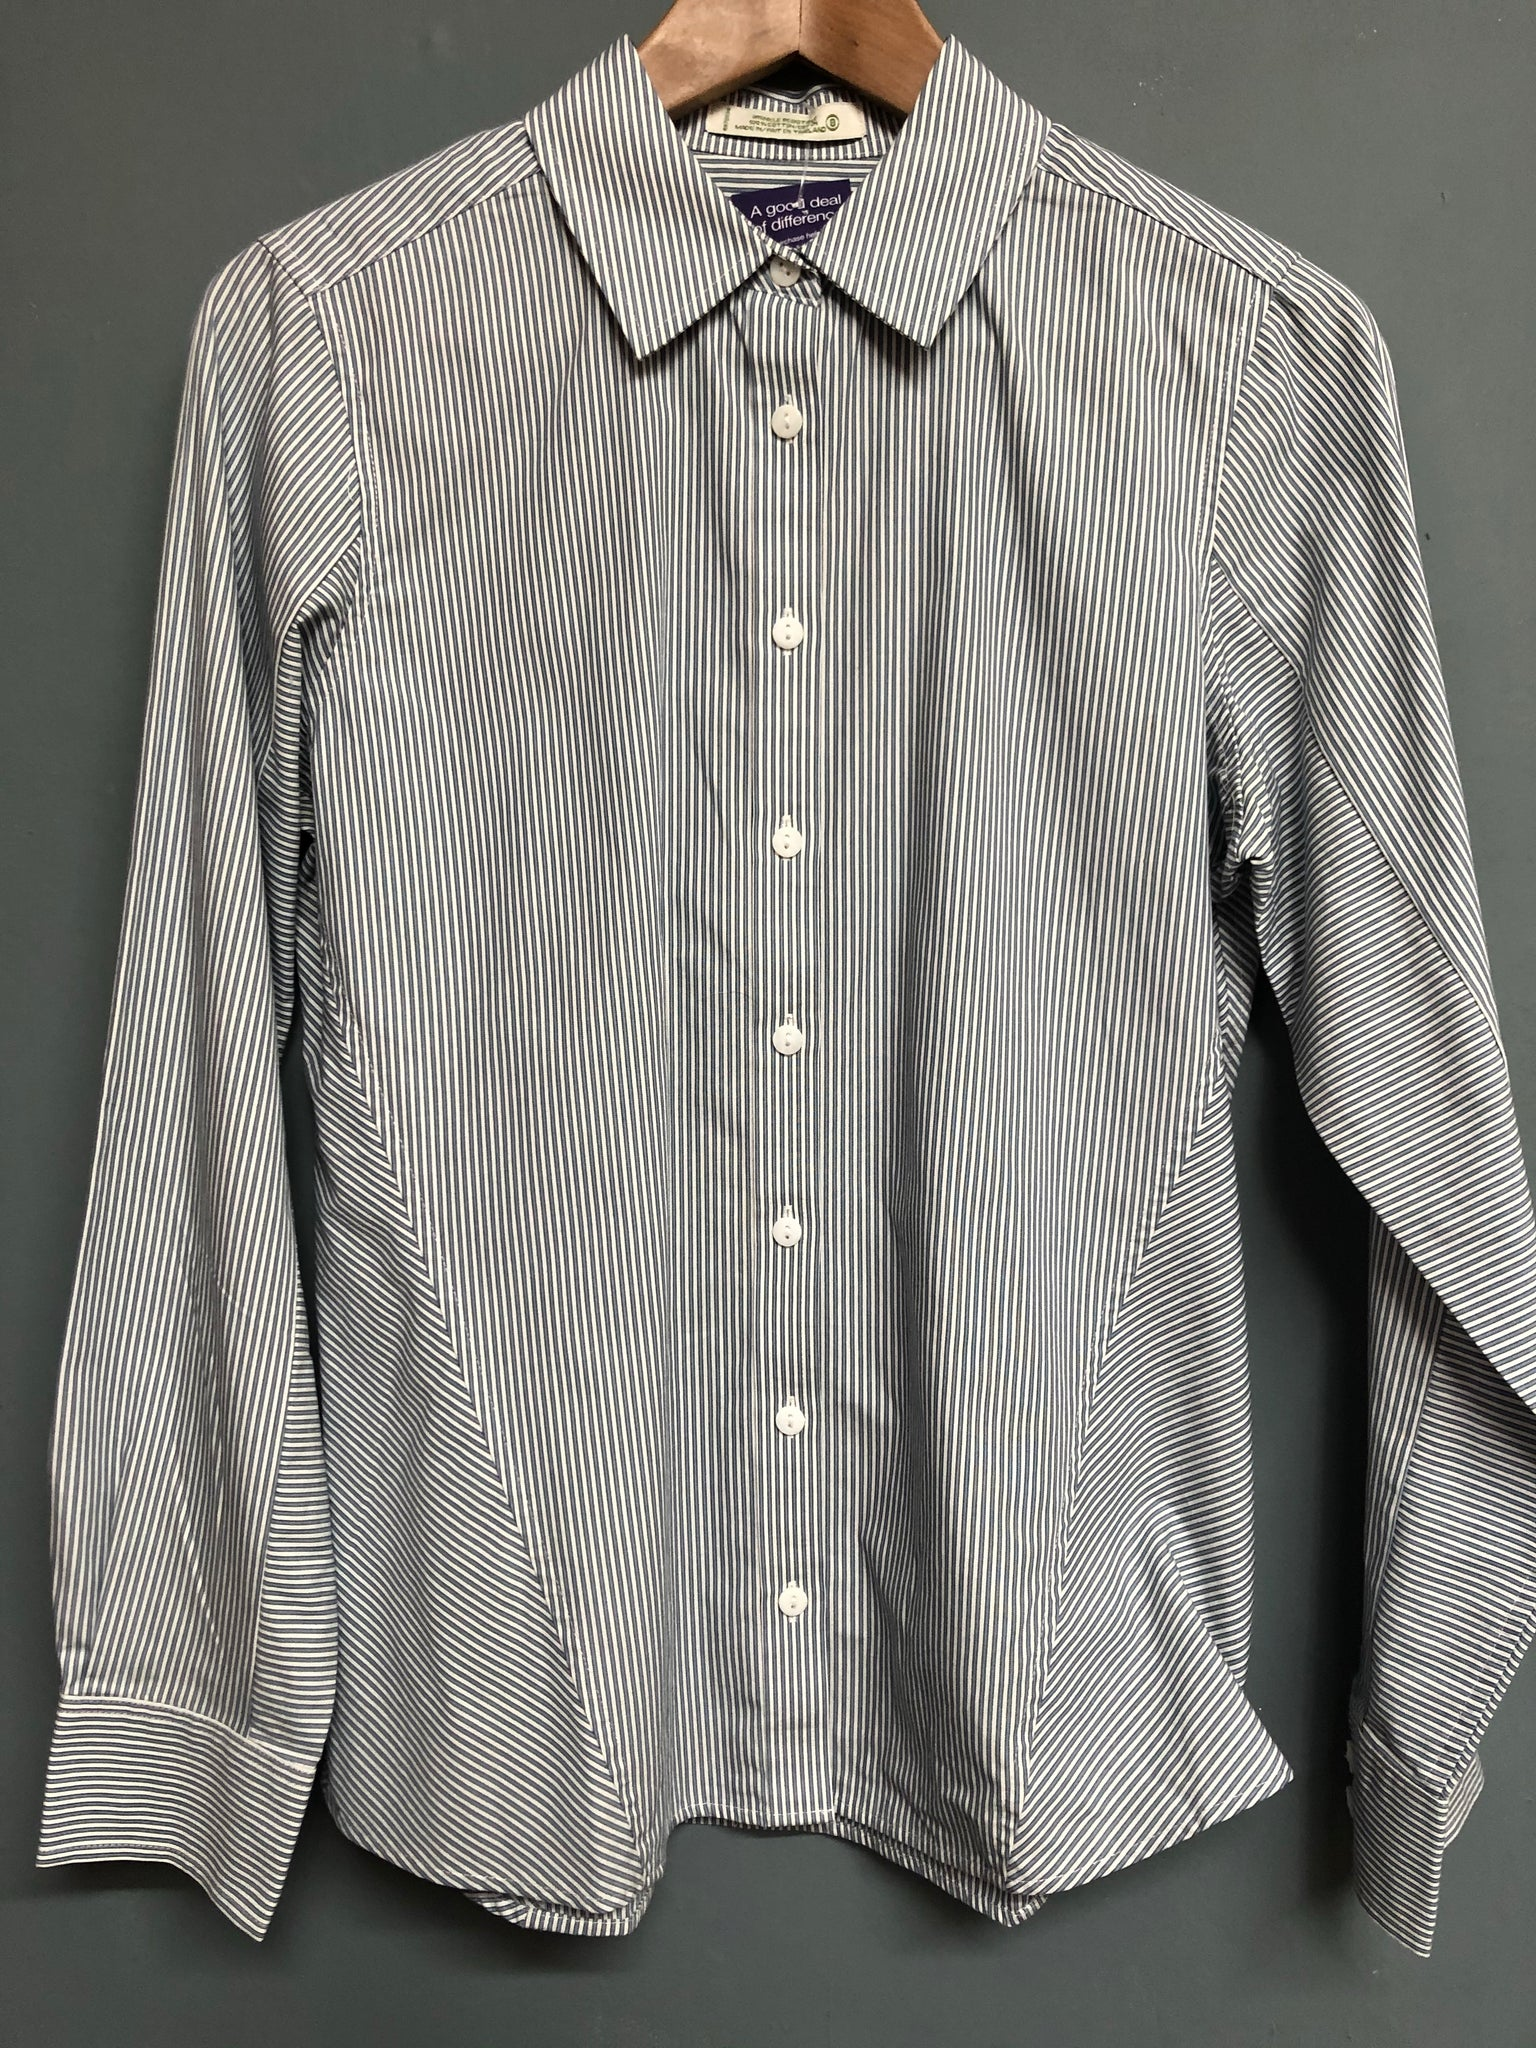 Orvis Blue and White Stripe Shirt Size 8